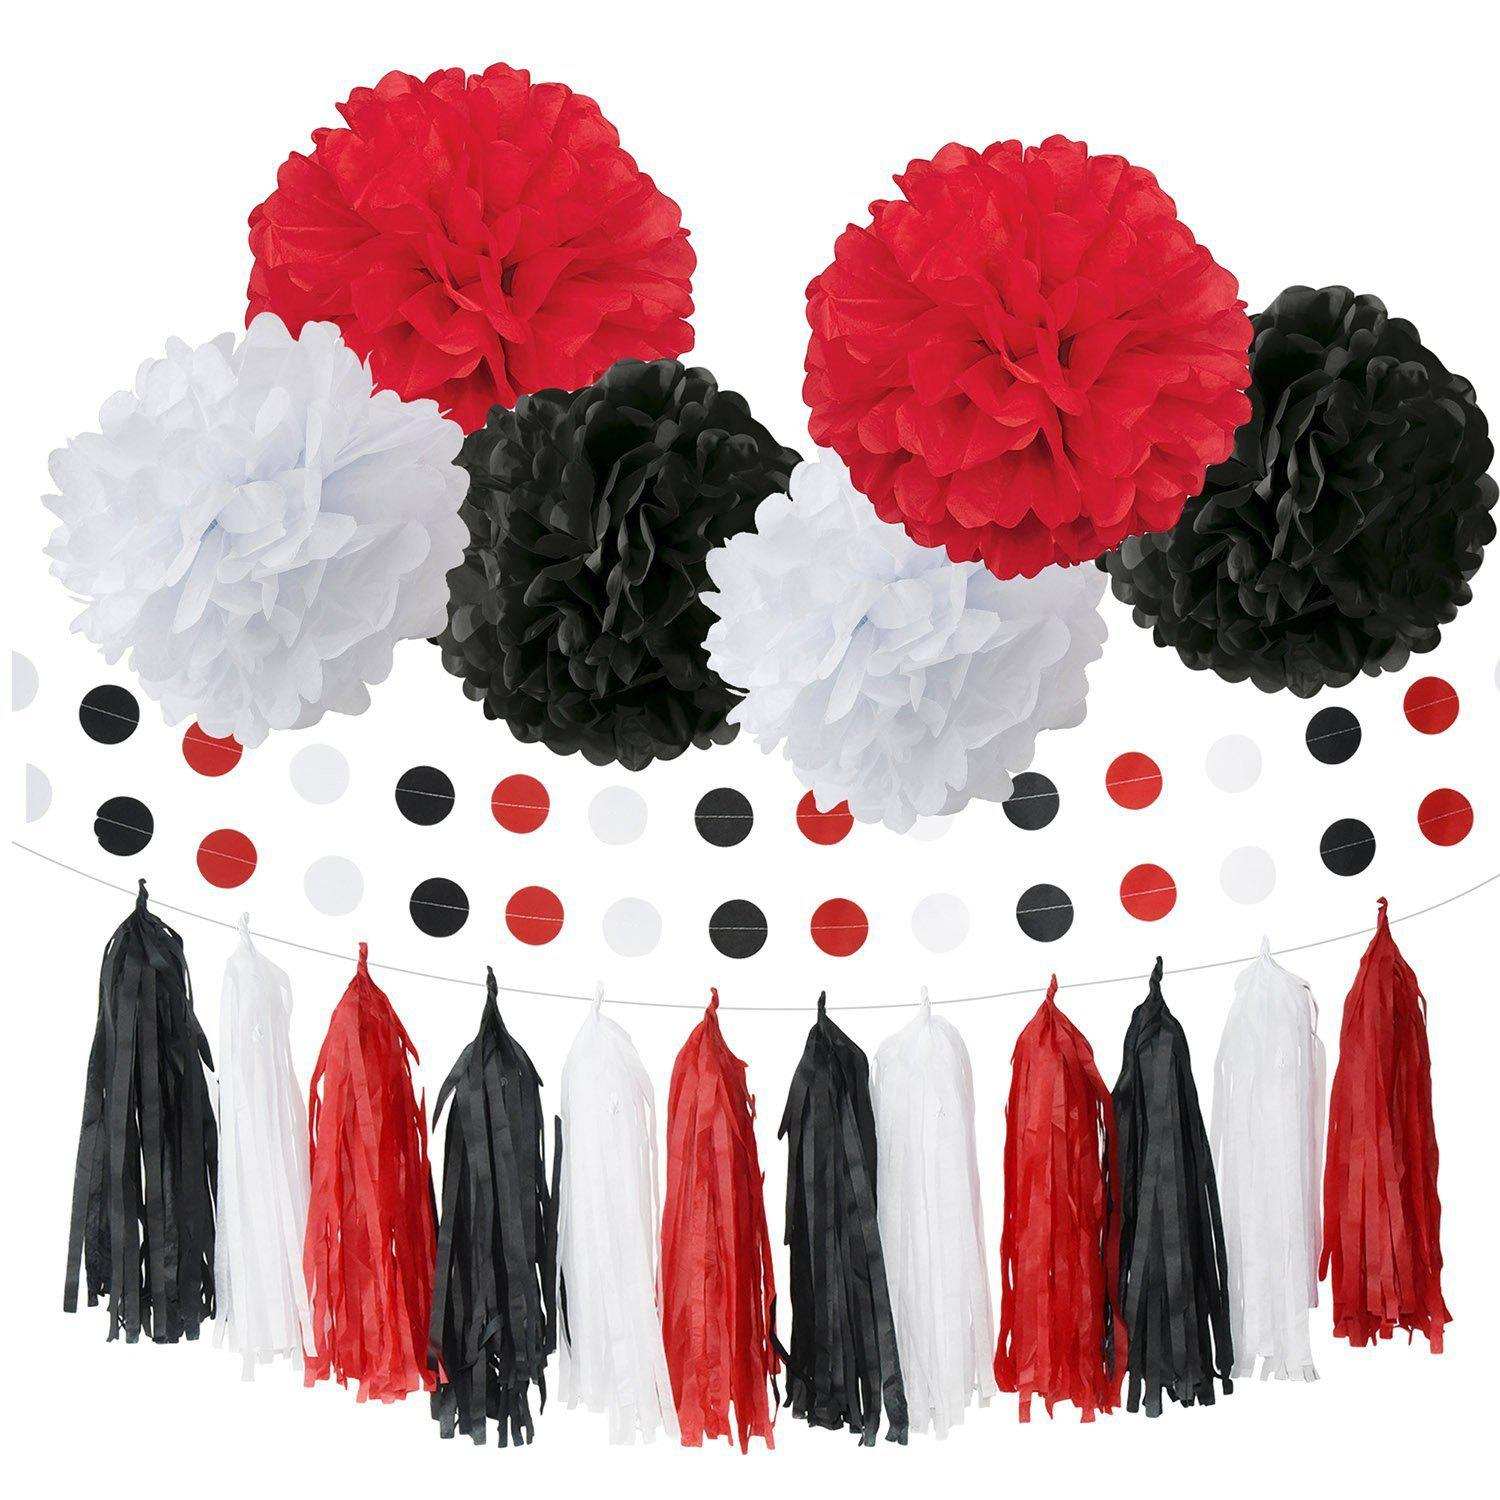 Baby Shower Decorations White Black Red Baby Ladybug Birthday Party Decoration/ First Birthday Girl Decorations Tissue Paper Pom Pom Tassel Garland Circle Paper Garland Birthday Decorations - BLACK / RED 20PCS